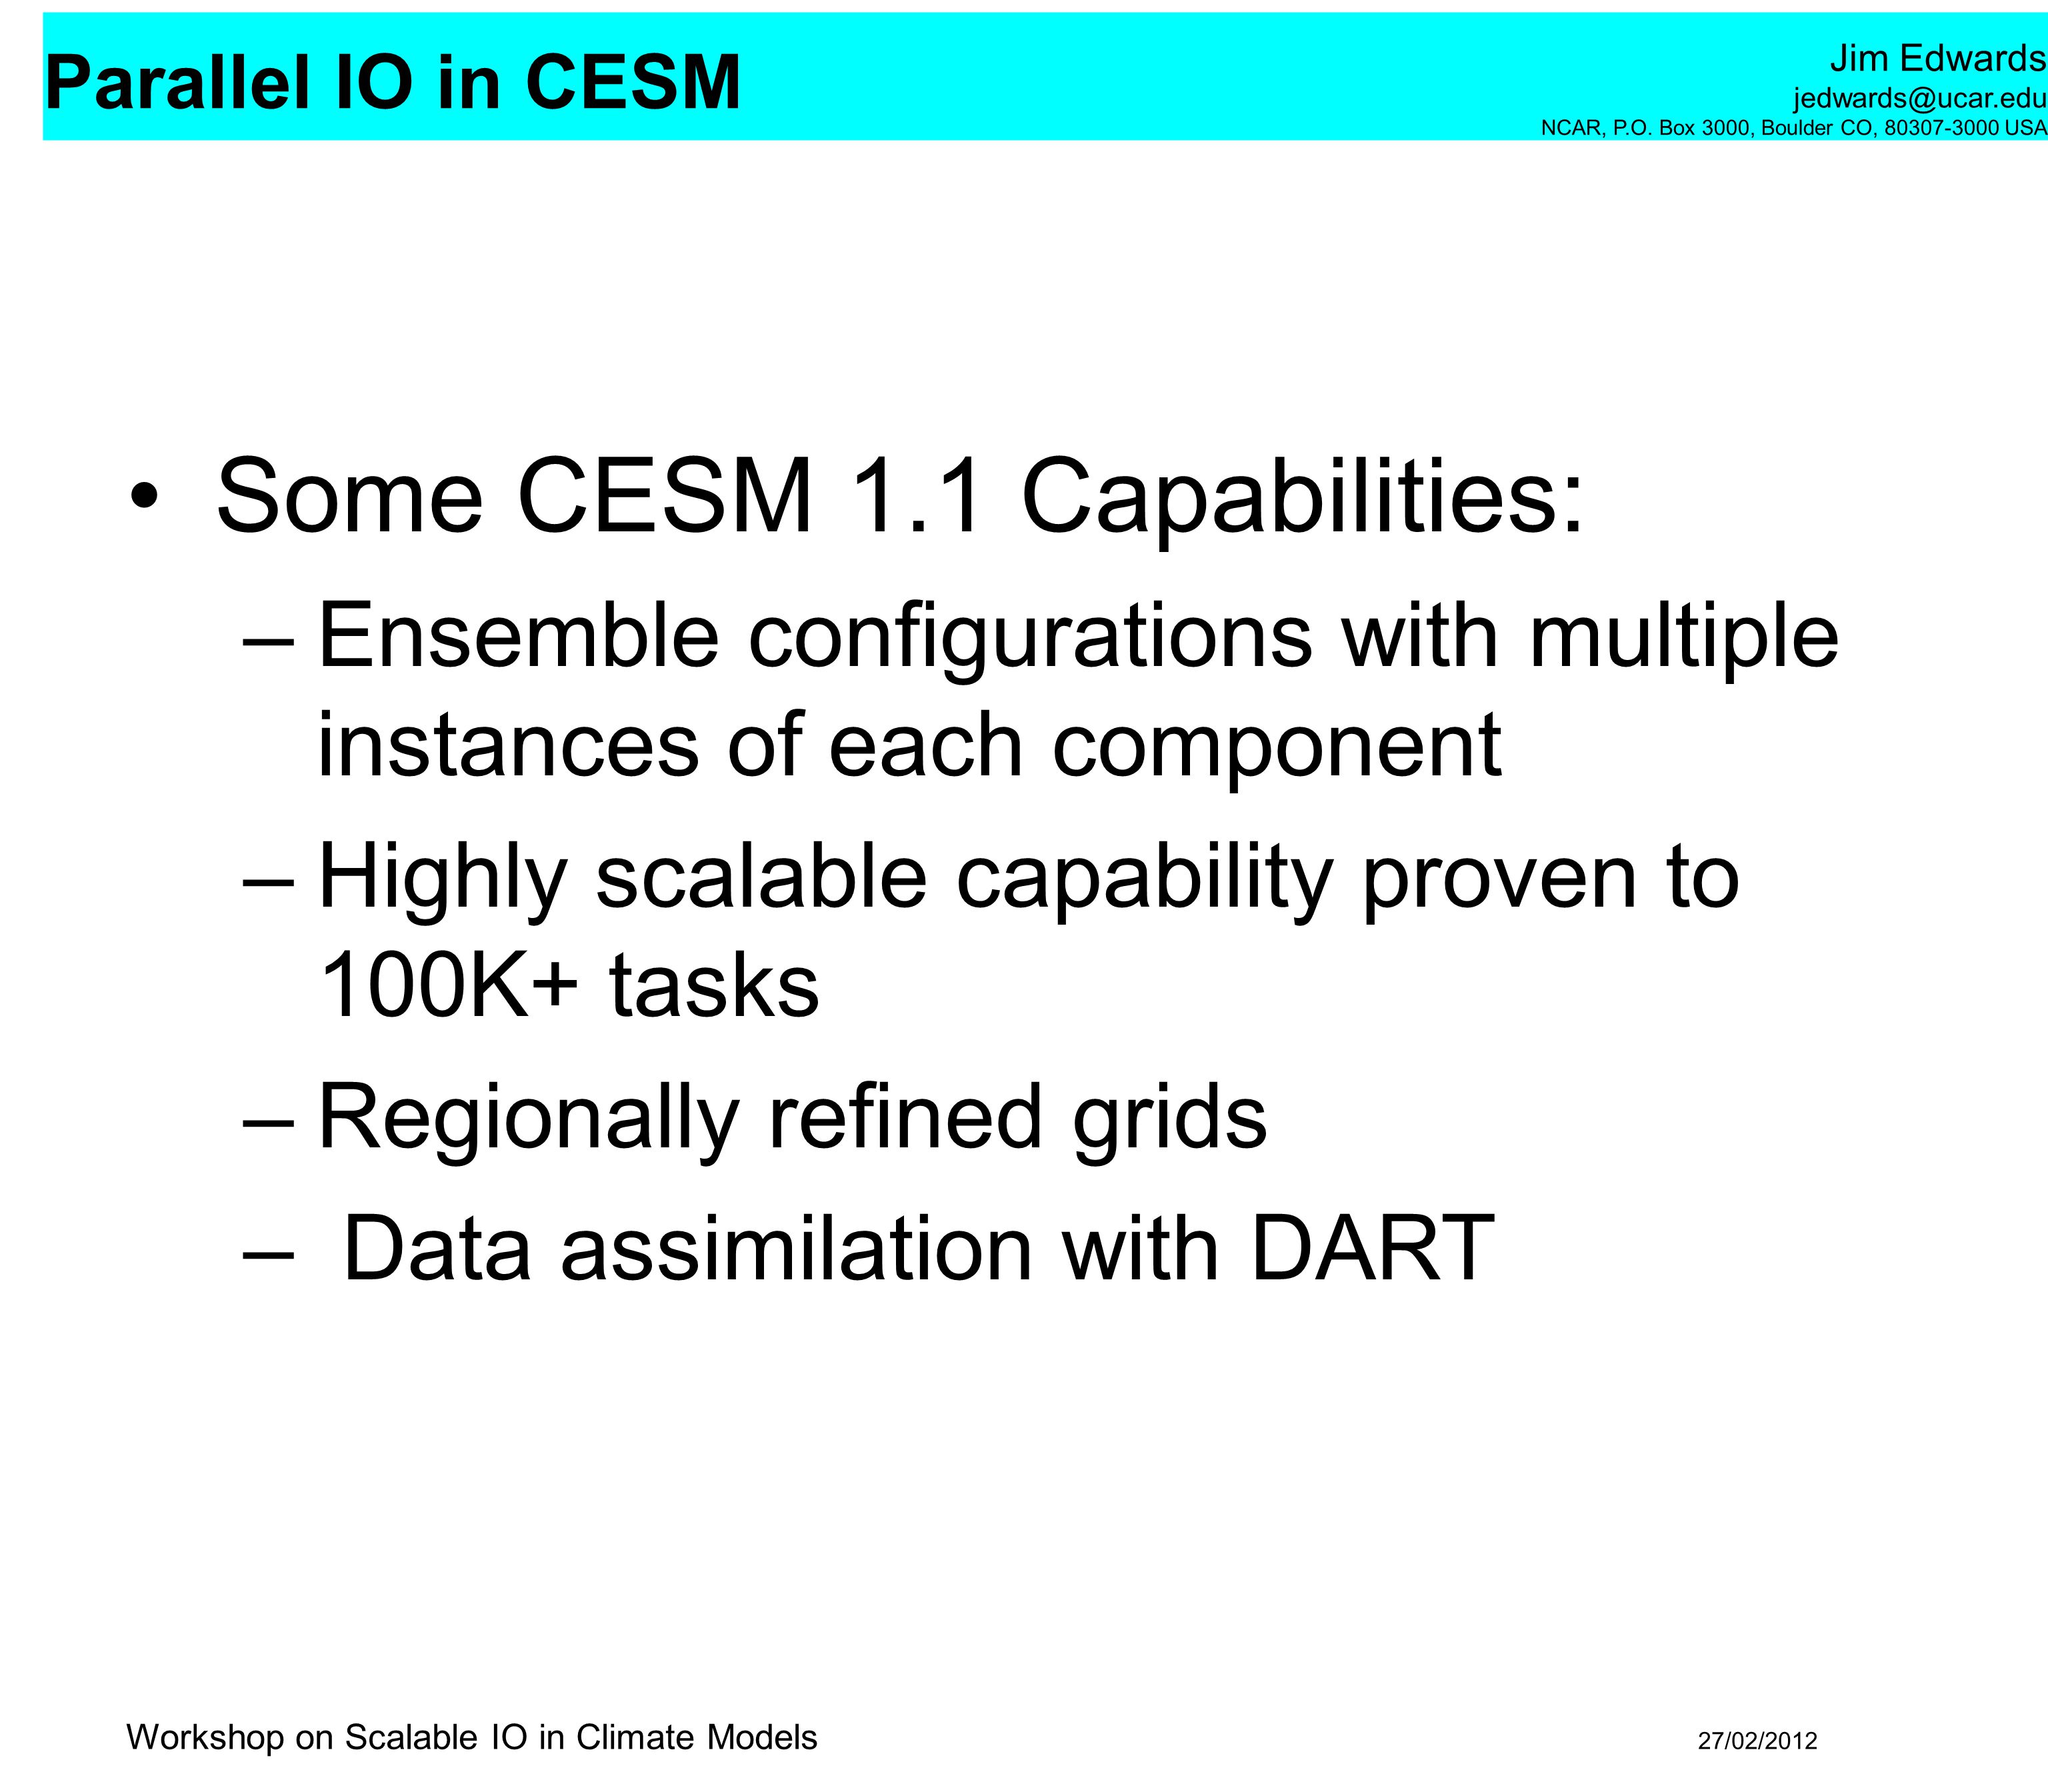 Some CESM 1.1 Capabilities: